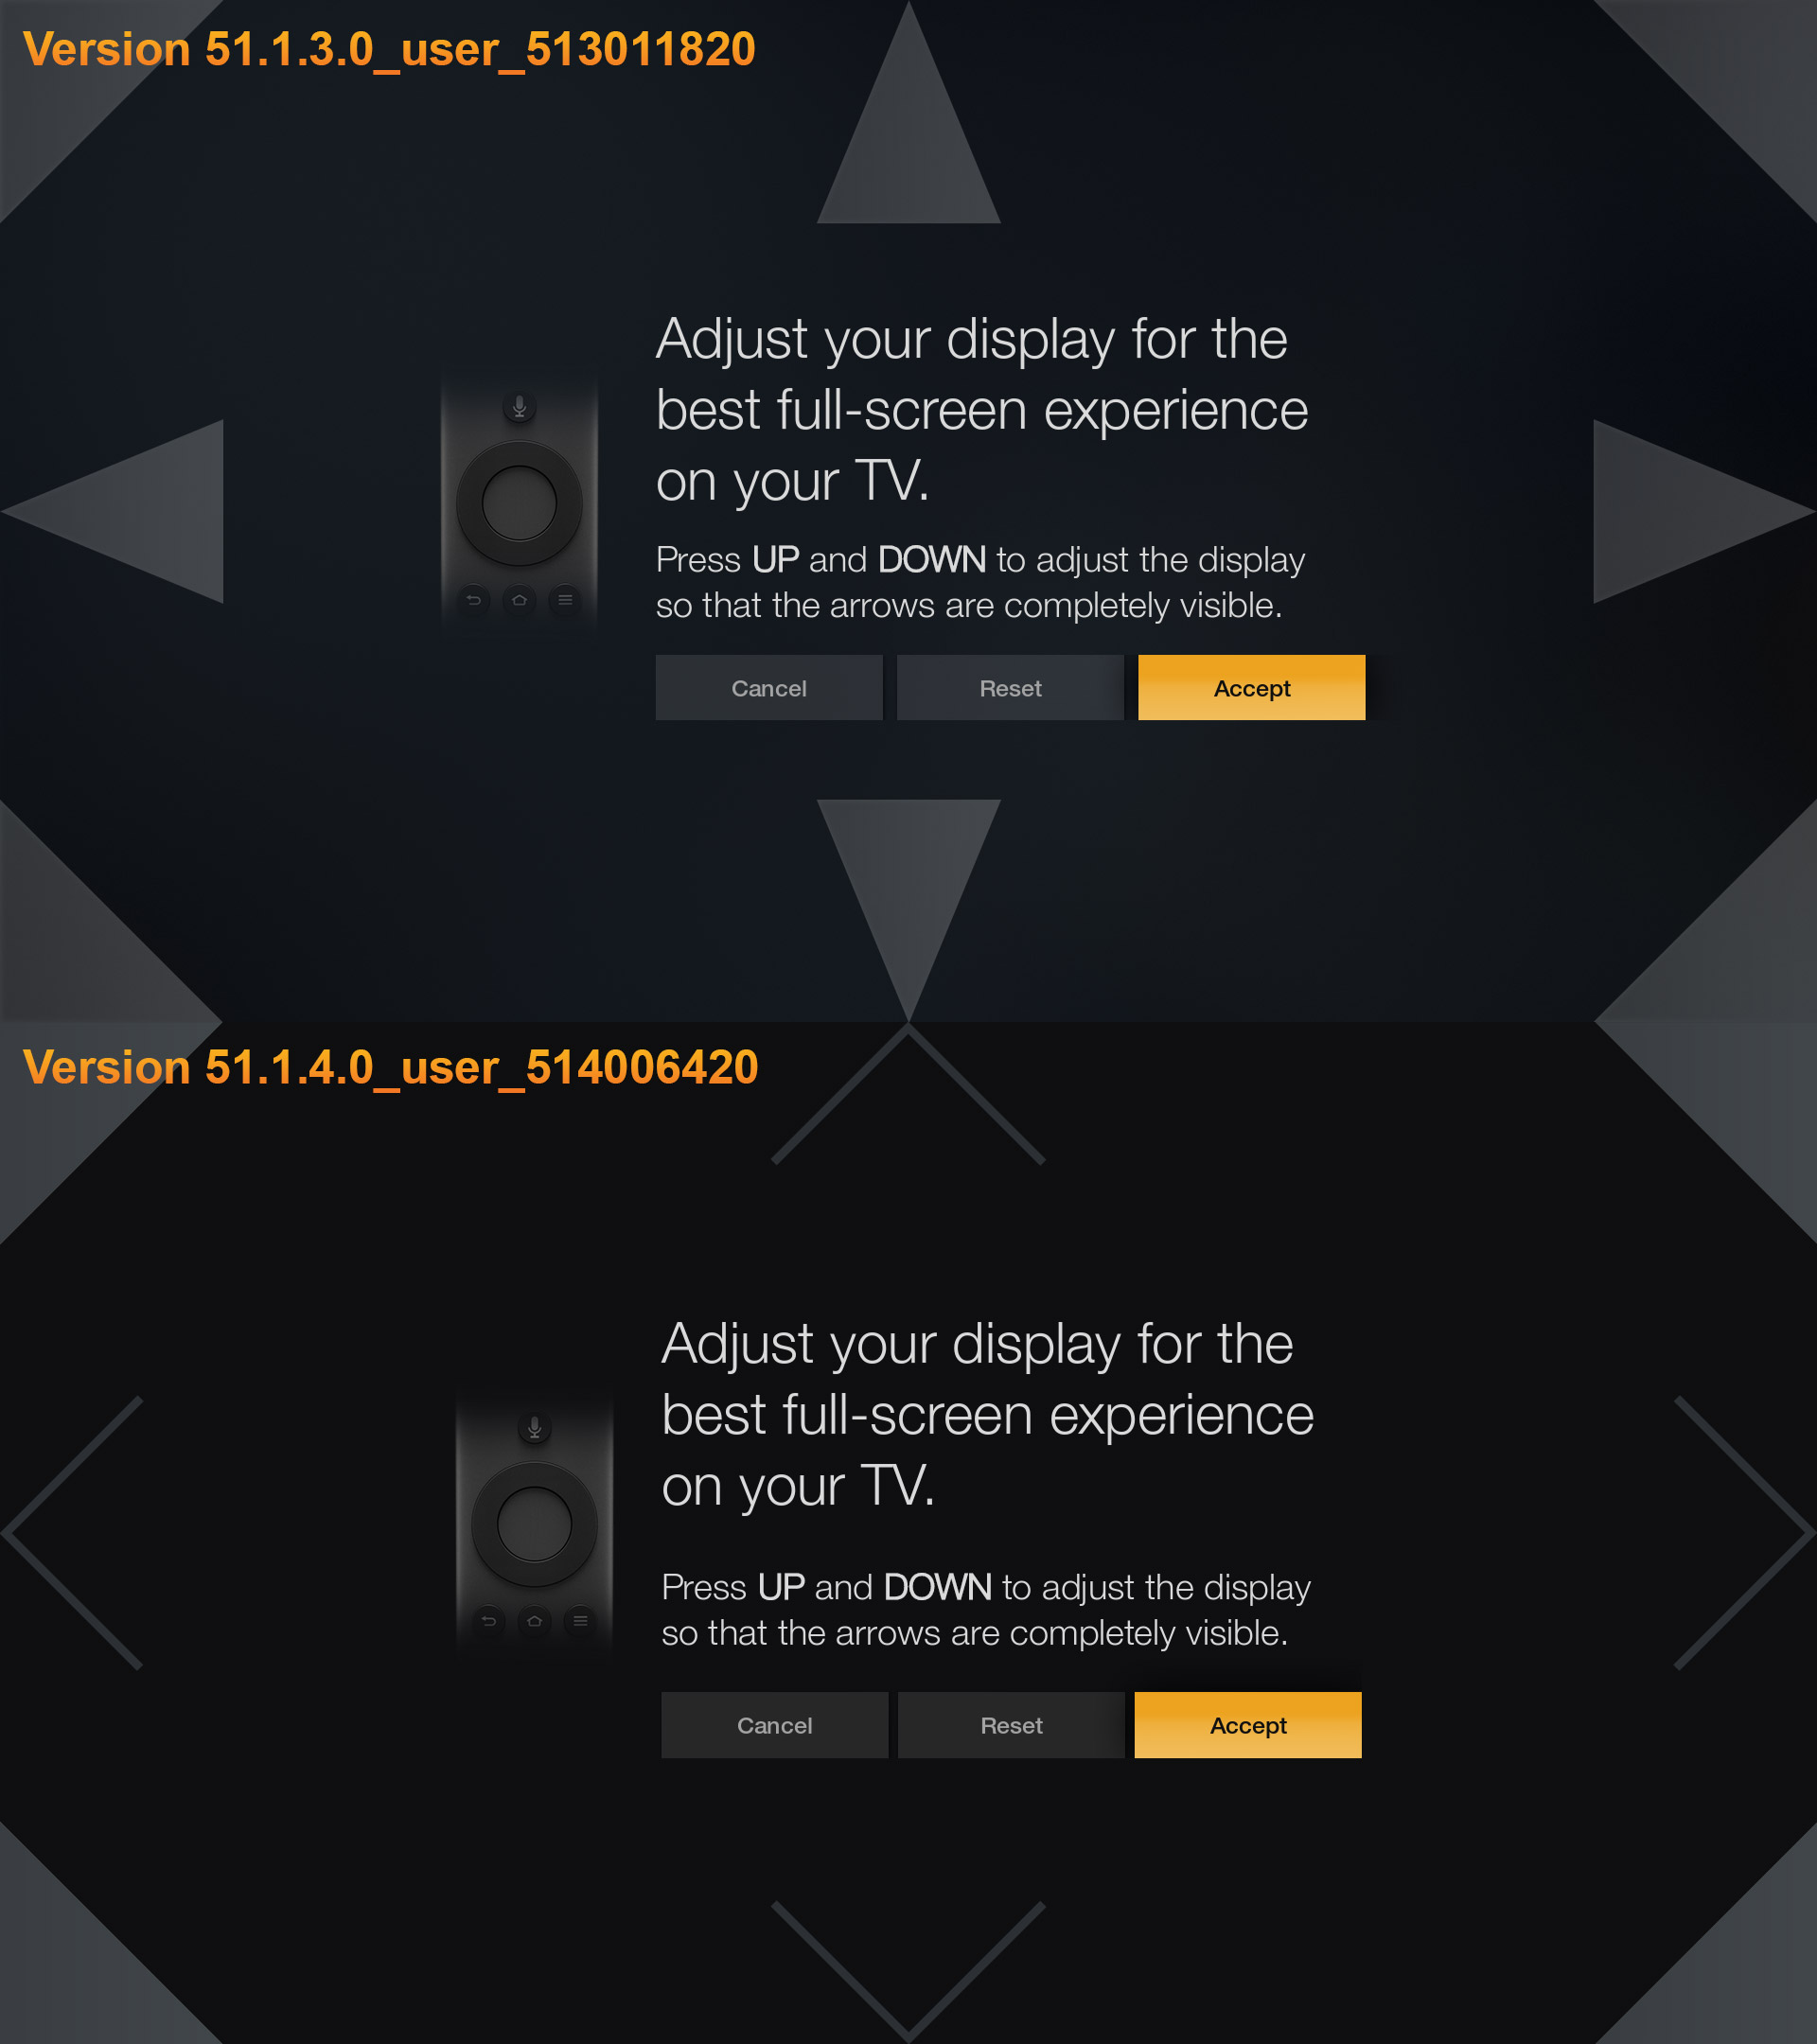 Overview of Fire TV Software Update 51 1 4 0_user_514006420